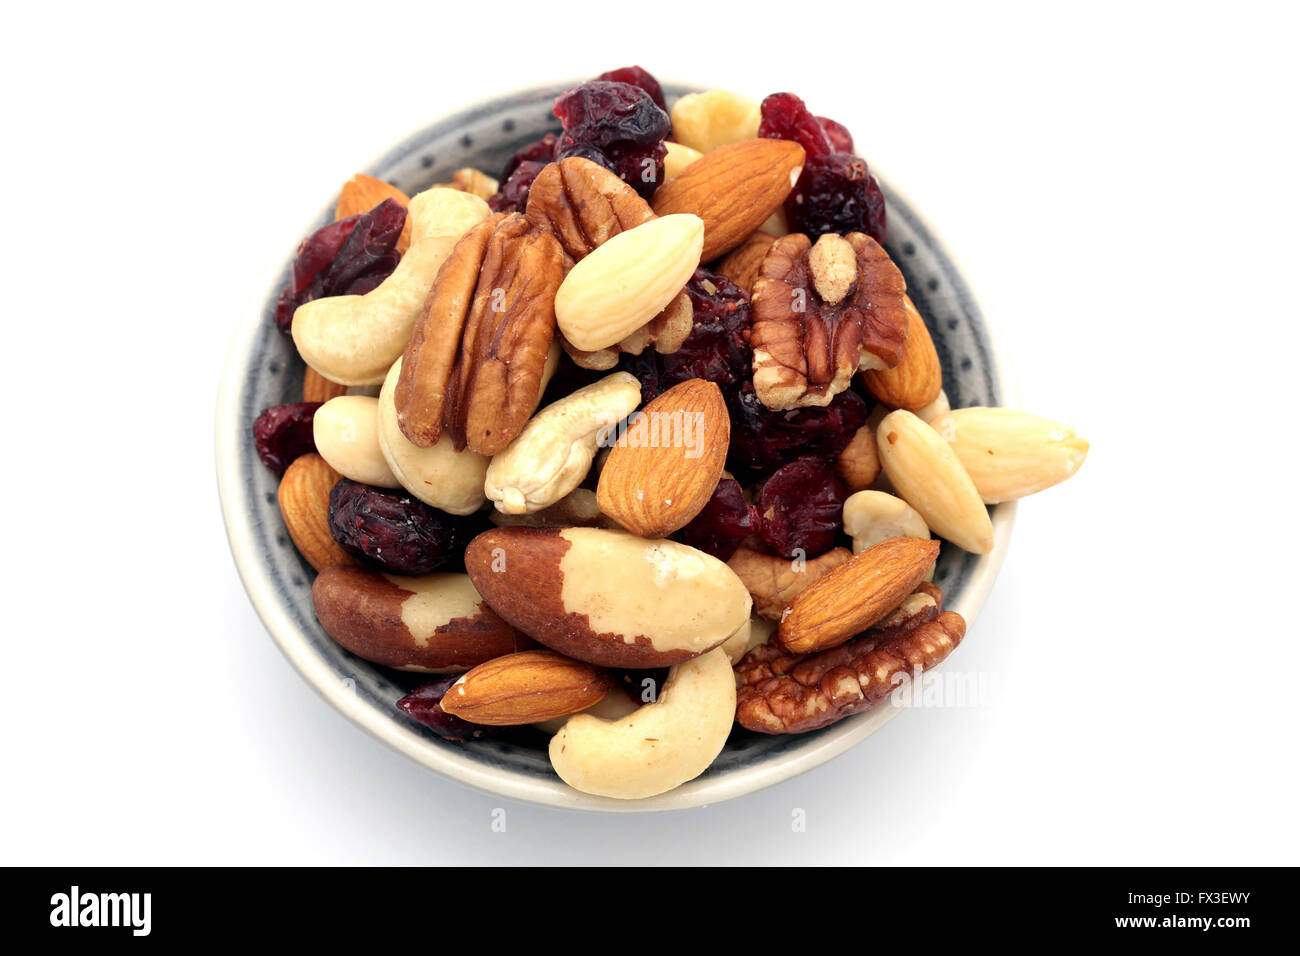 A bowl of mixed nuts - Stock Image